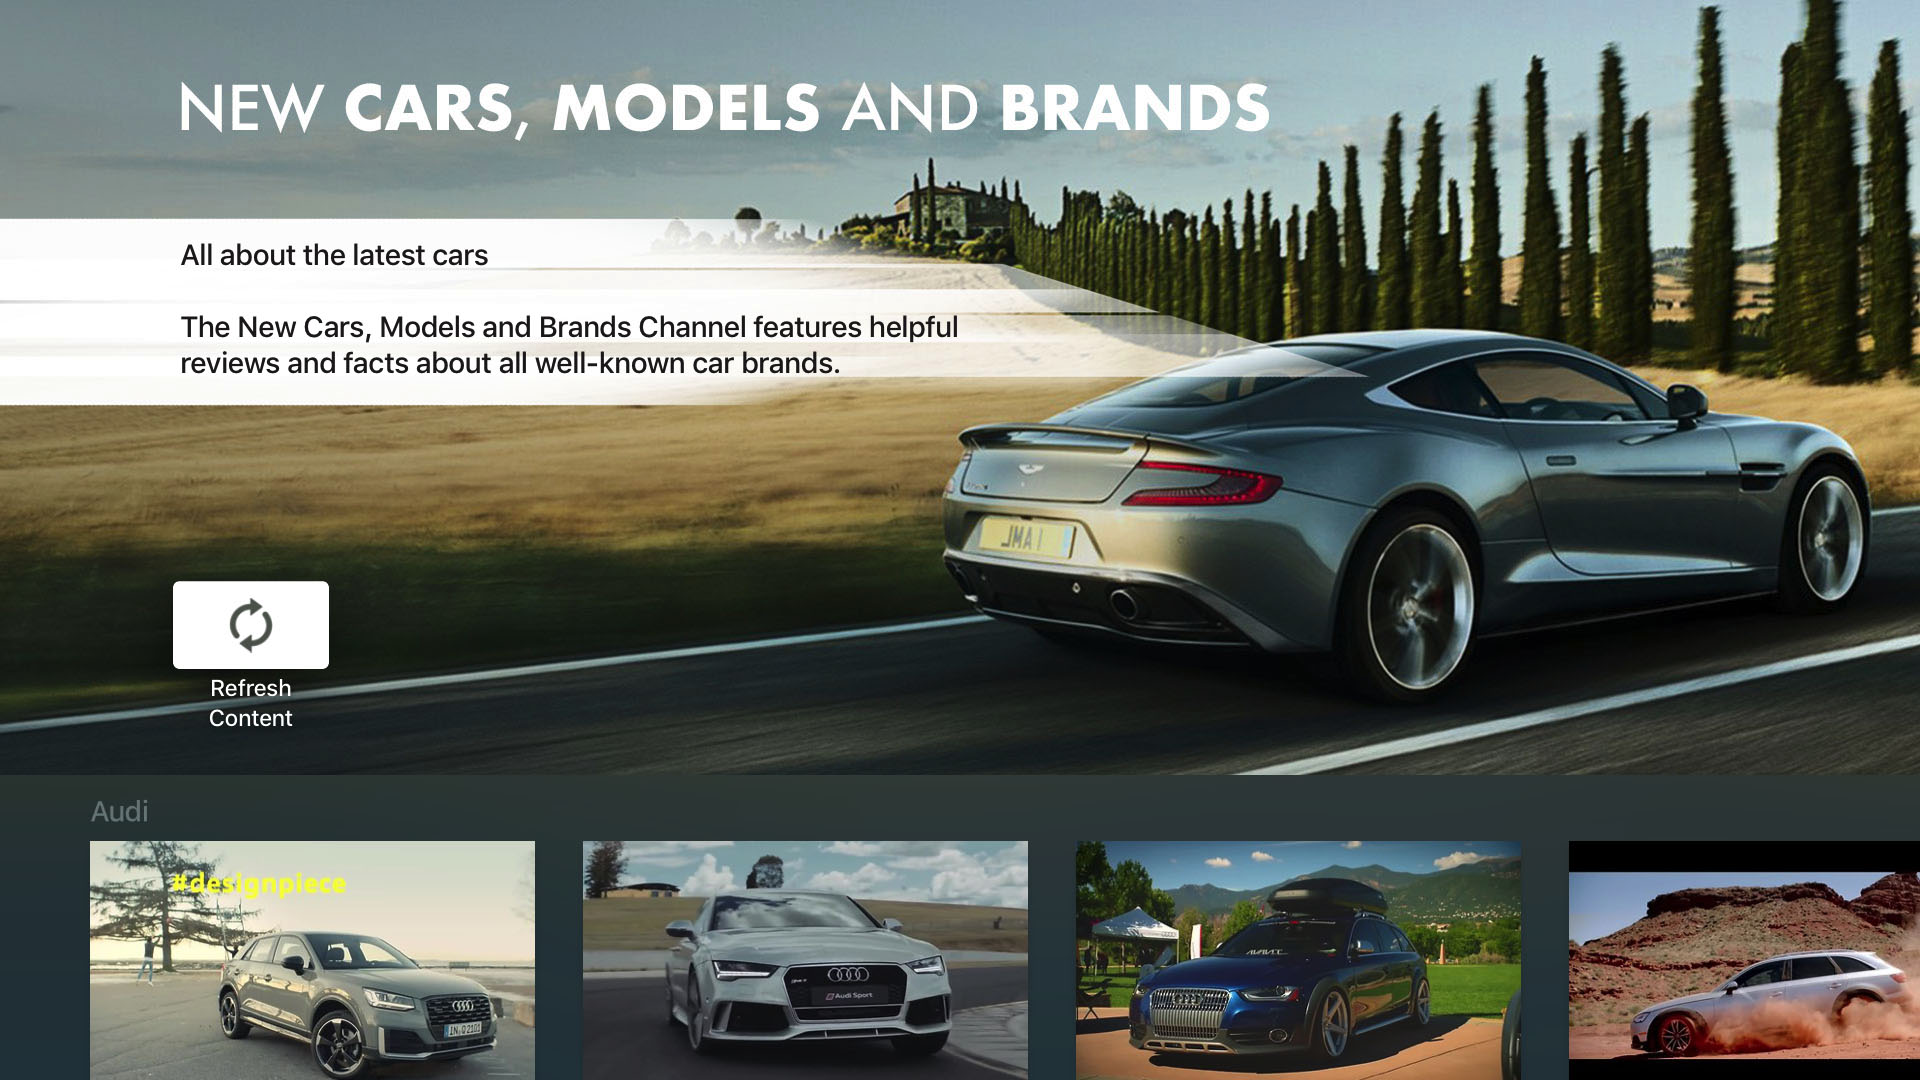 New Cars, Models and Brands Screenshot 001